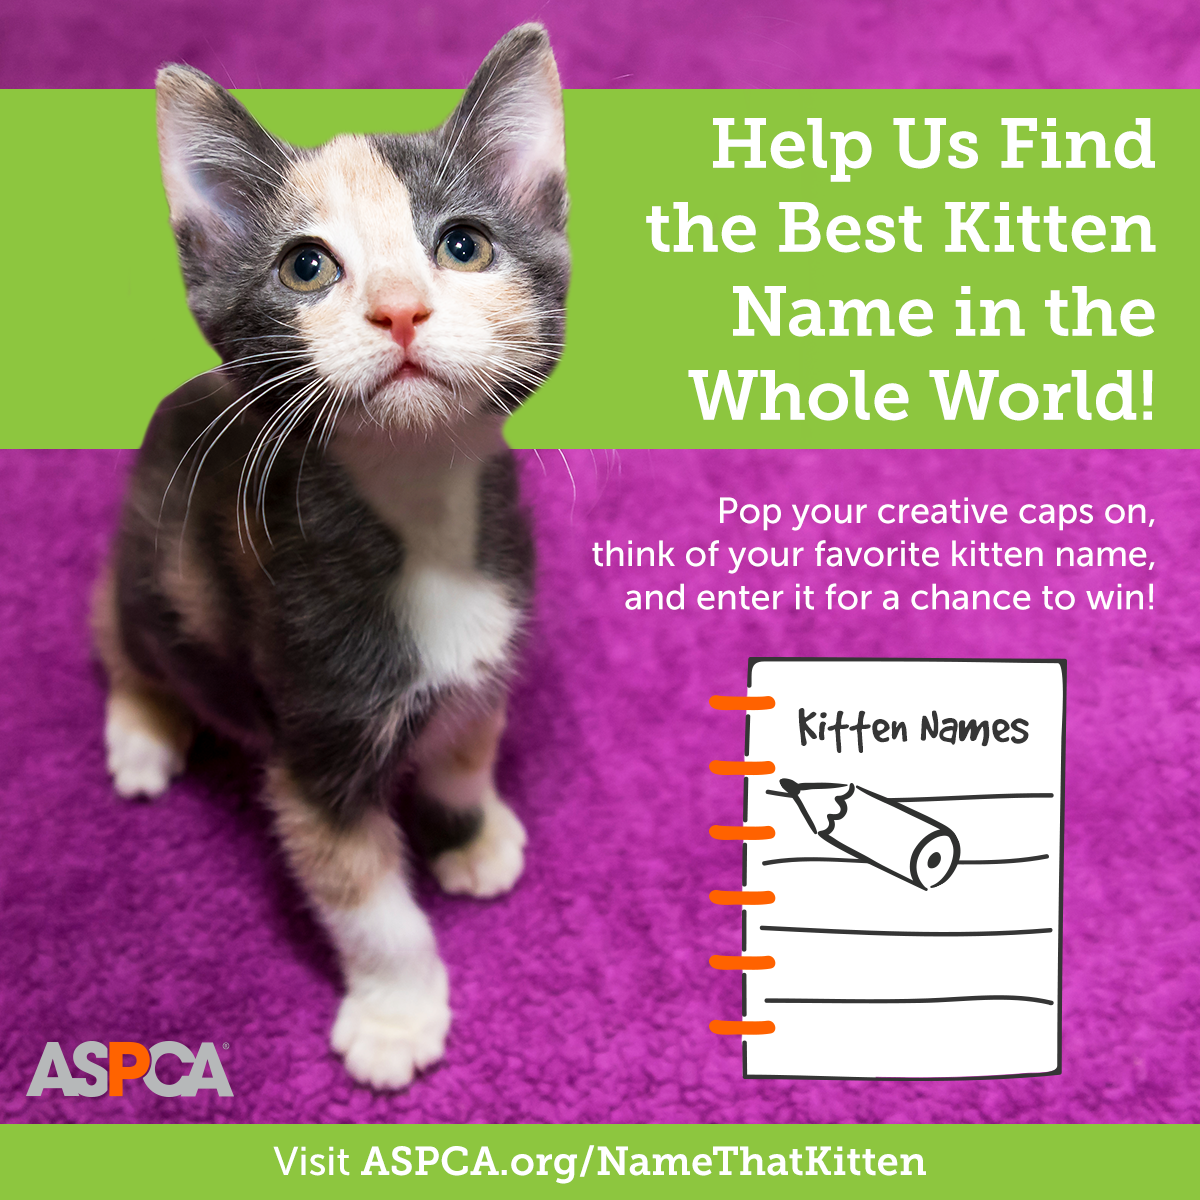 Cast Your Vote For The Best Kitten Name In The World With Images Kitten Names Kittens Cats And Kittens